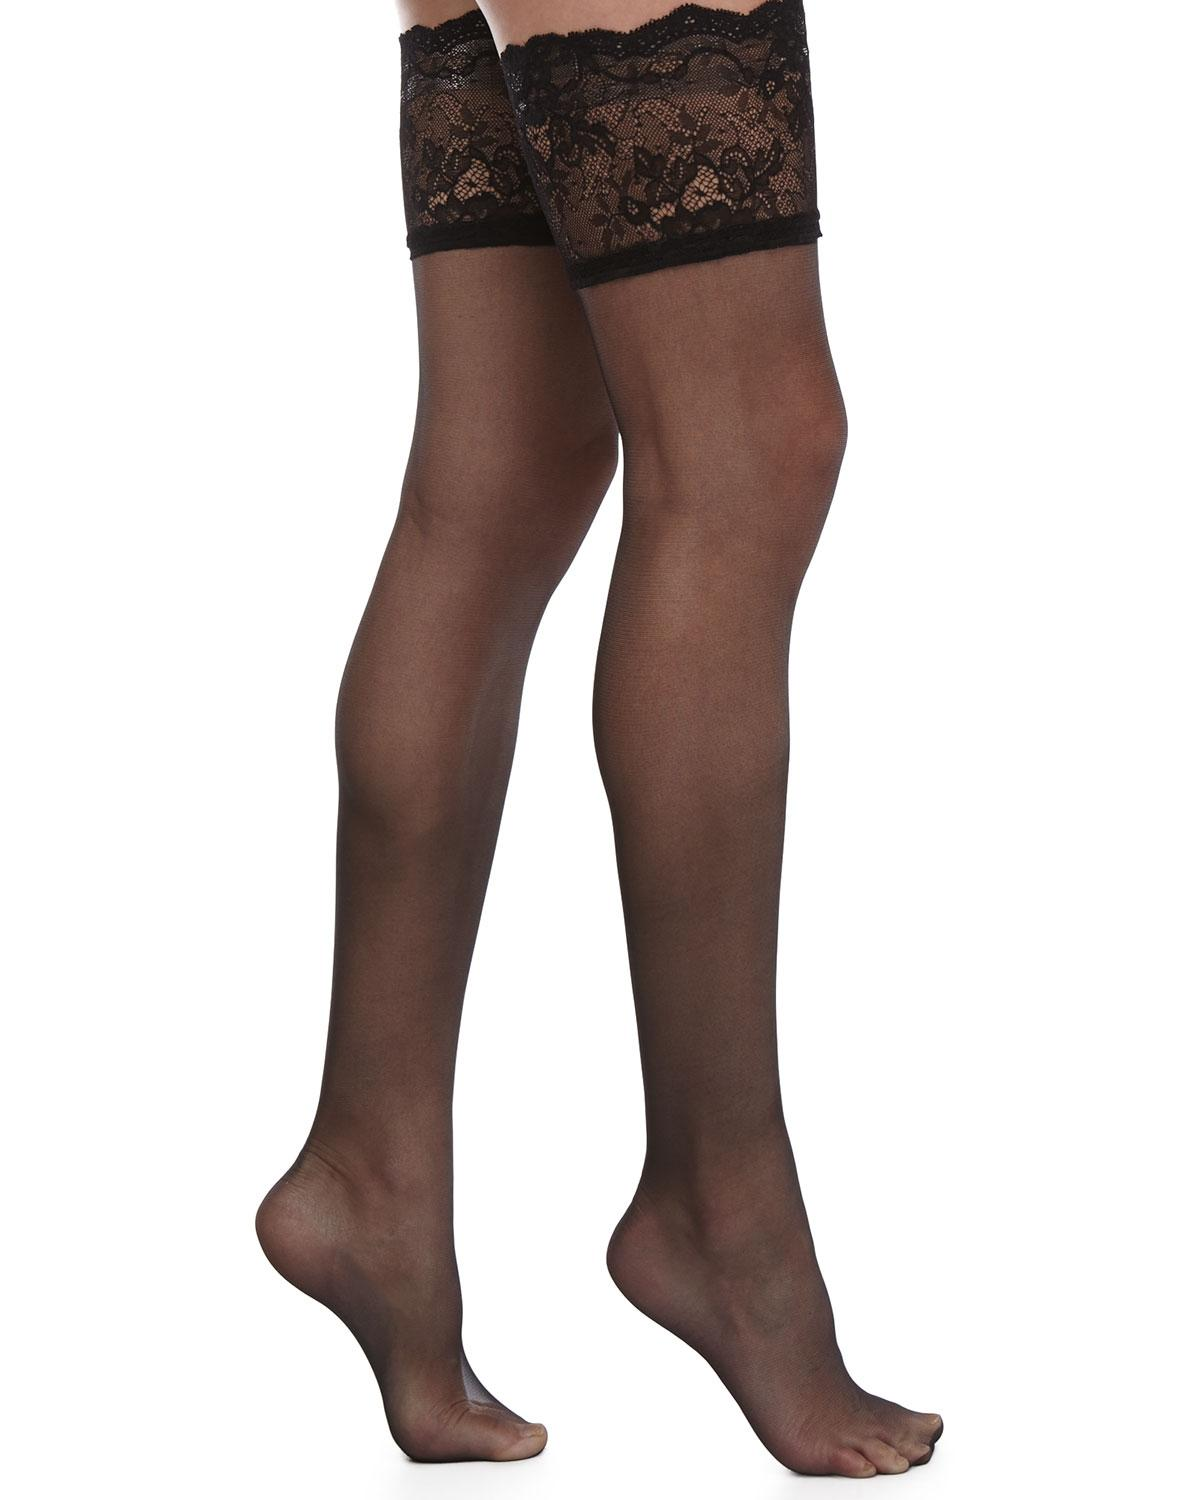 Donna Karan Signature Chantilly Lace Thigh High Stockings In Black - Lyst-2996